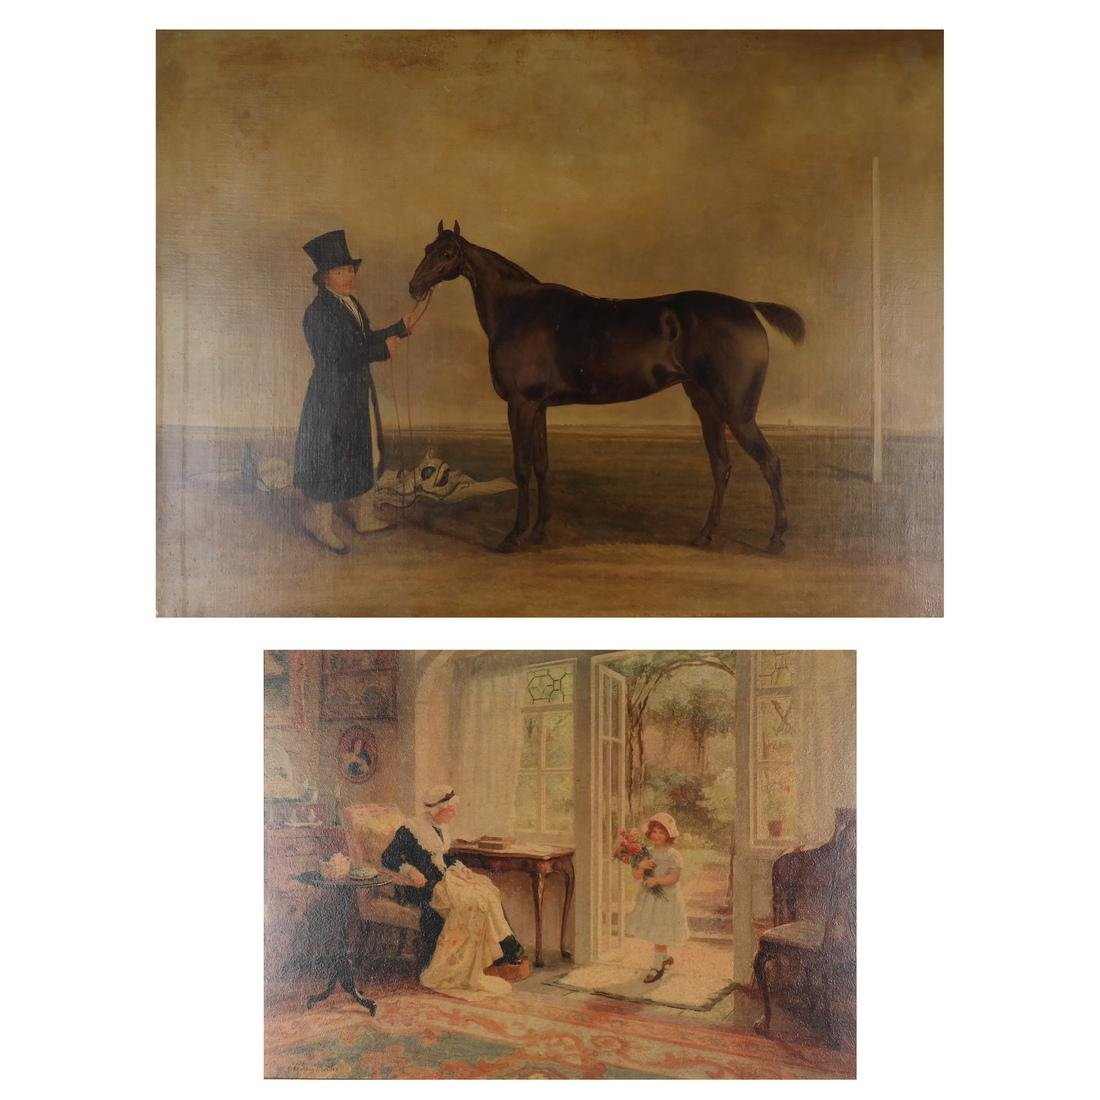 After Edwin Cooper: Horse Scene and a Print